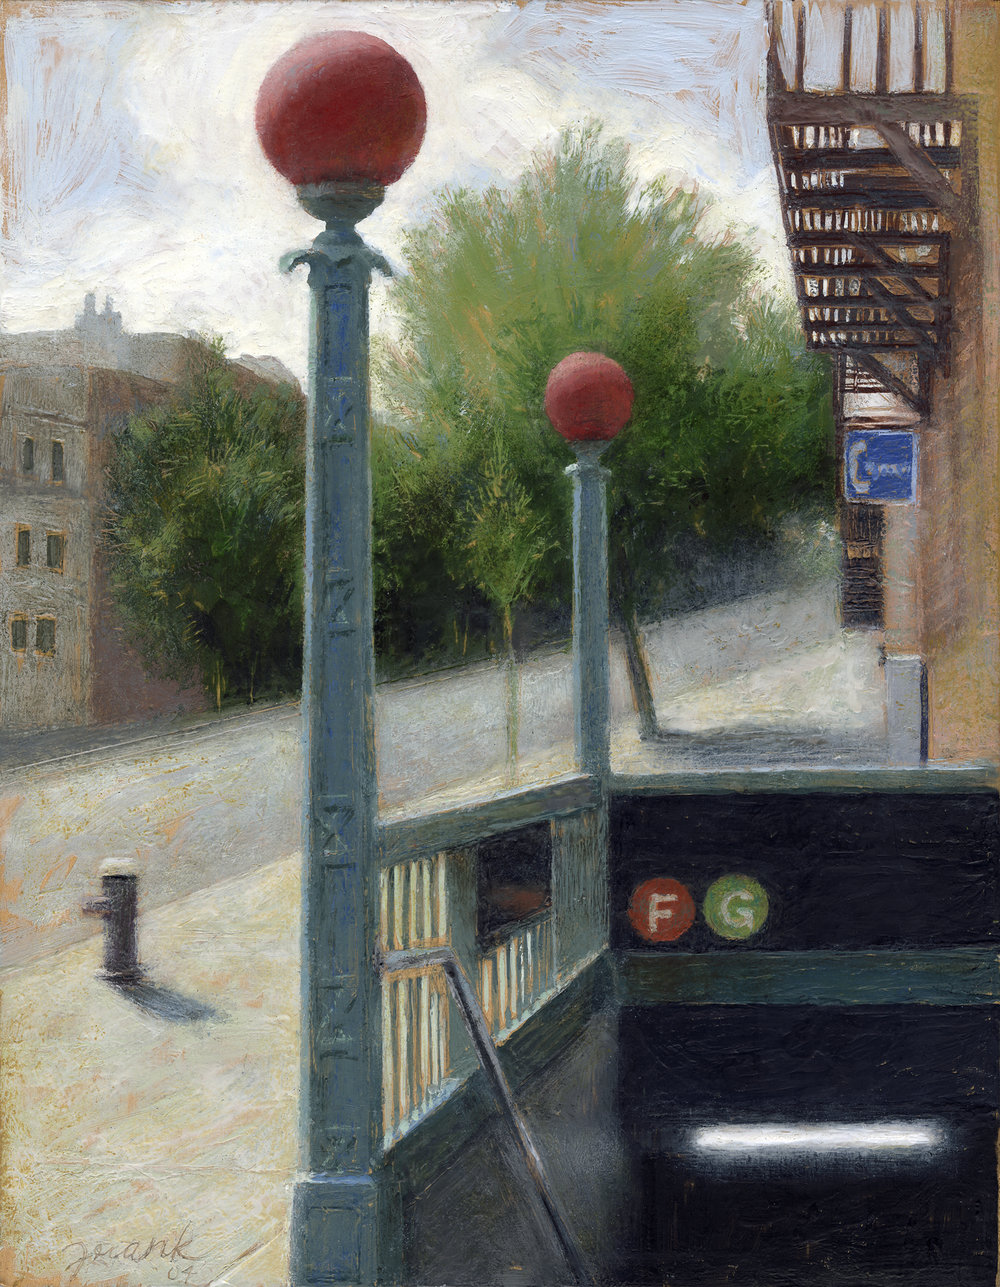 Subway Entrance, encaustic wax on wood panel, 2004